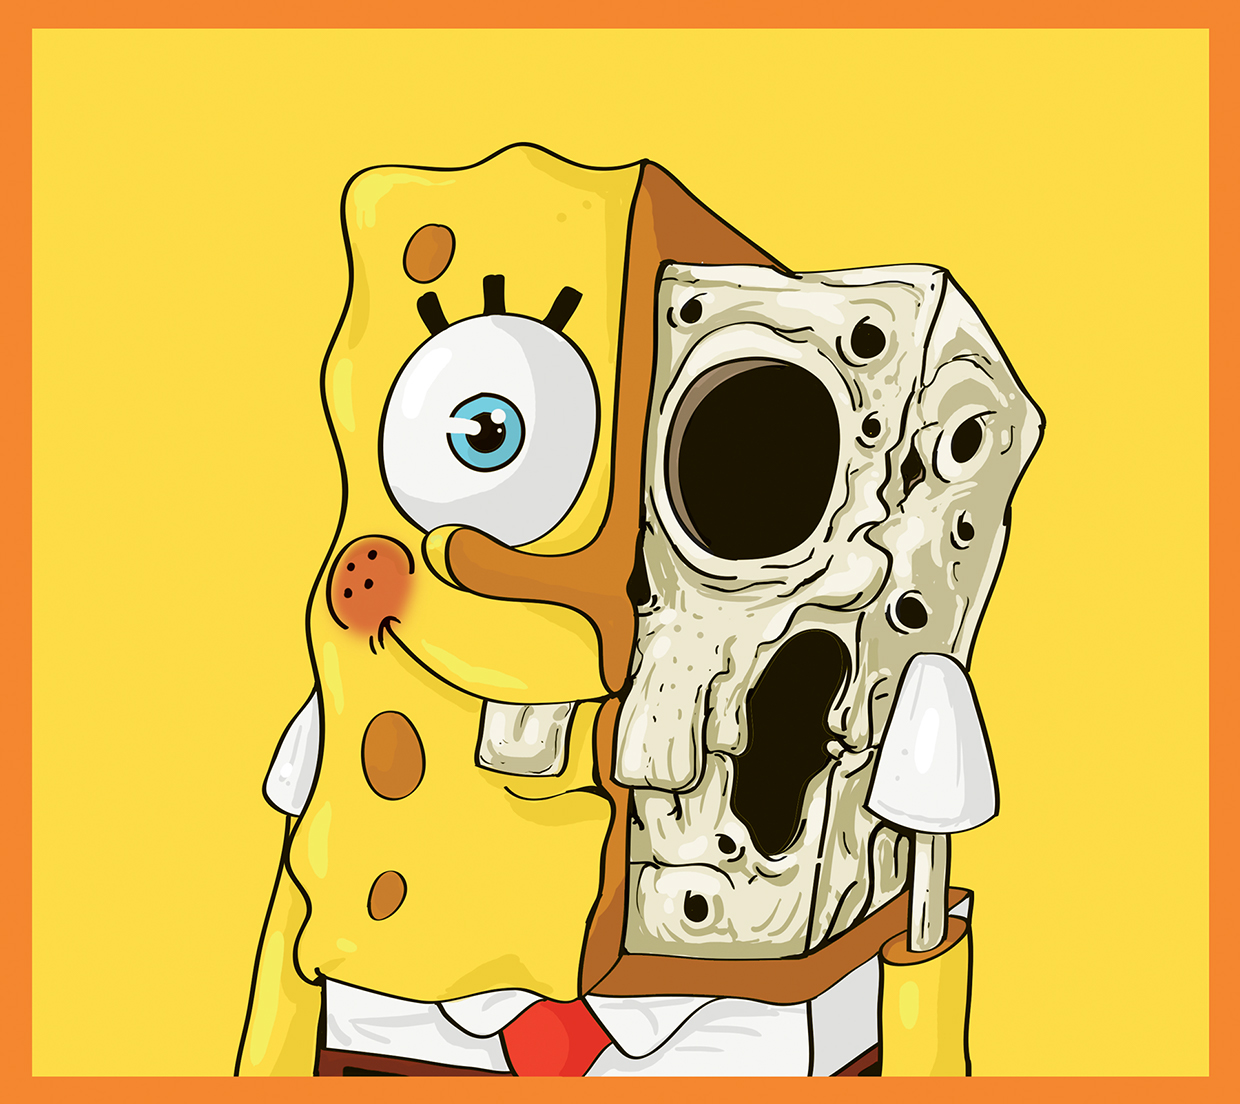 Spongebob Squarepants - Cute Yellow - Art by Mahmoud Refaat